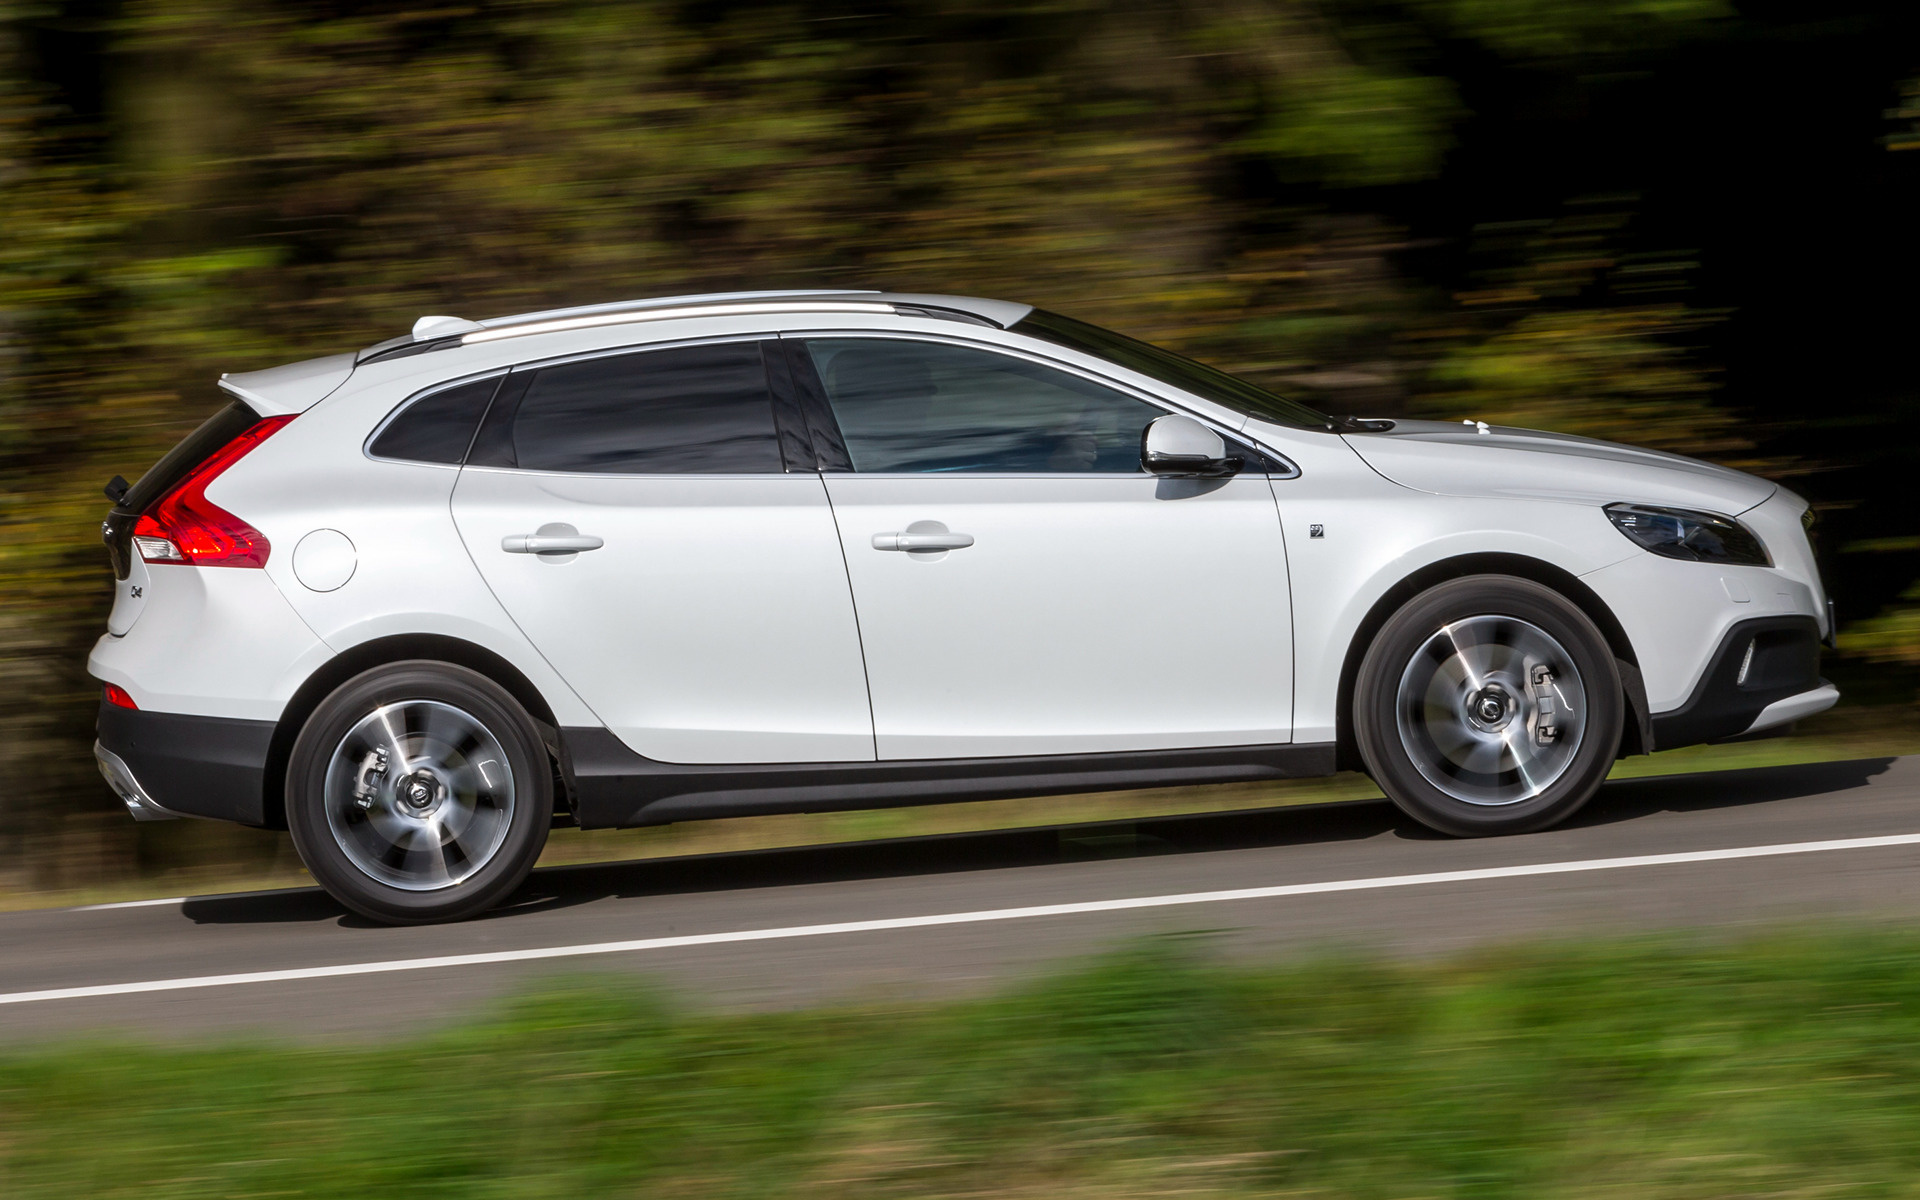 Volvo V40 Cross Country Ocean Race Special Edition Rear Three Quarters together with 2013 Volvo V40 R Design Hatchback Interior Euro Spec Photo 475715 furthermore V40xc 2015 moreover Volvo Xc 60 RZCATSFR312899175 besides 2015 Volvo XC90 1. on 2015 volvo xc60 ocean race edition